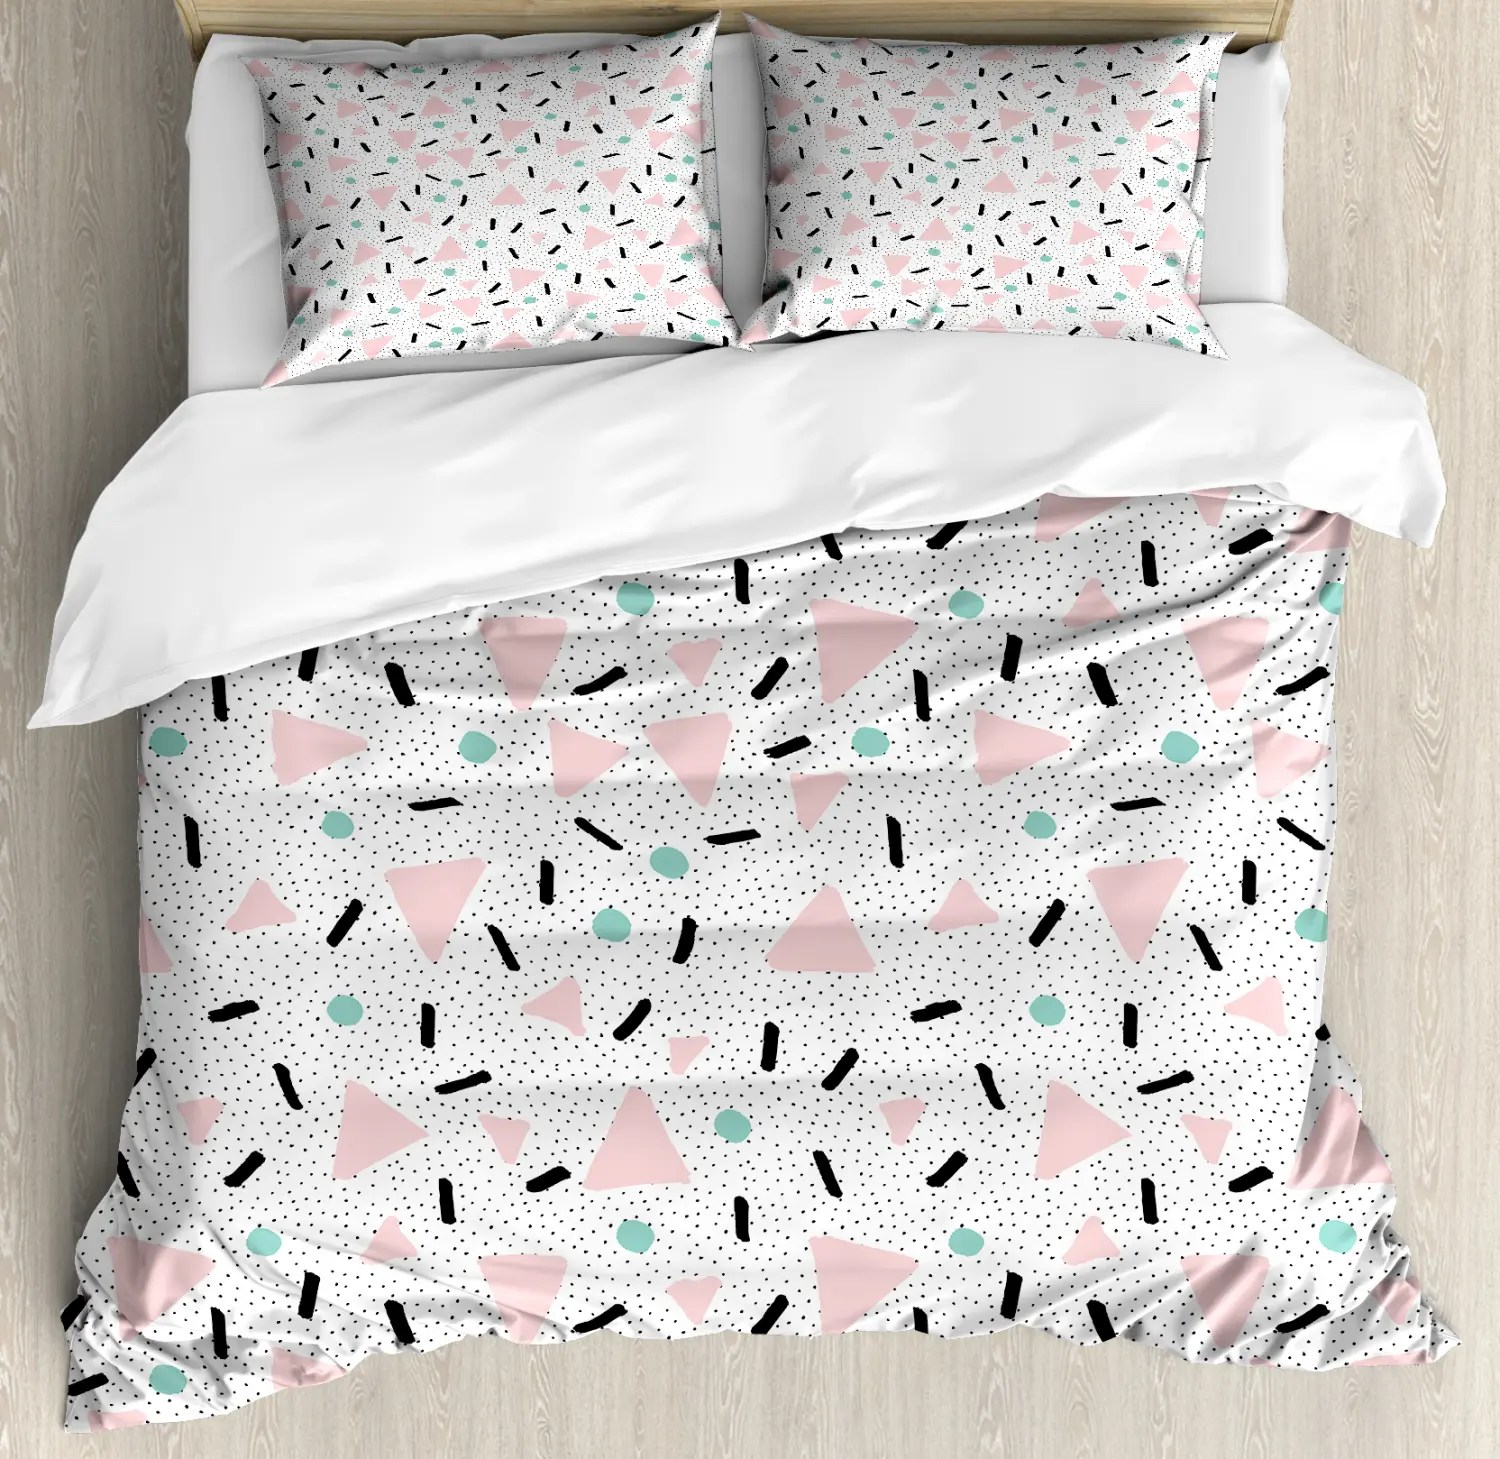 Detektiv Conan Bettwäsche Geometric Duvet Set With Pillow Shams Retro Triangles Dots Print